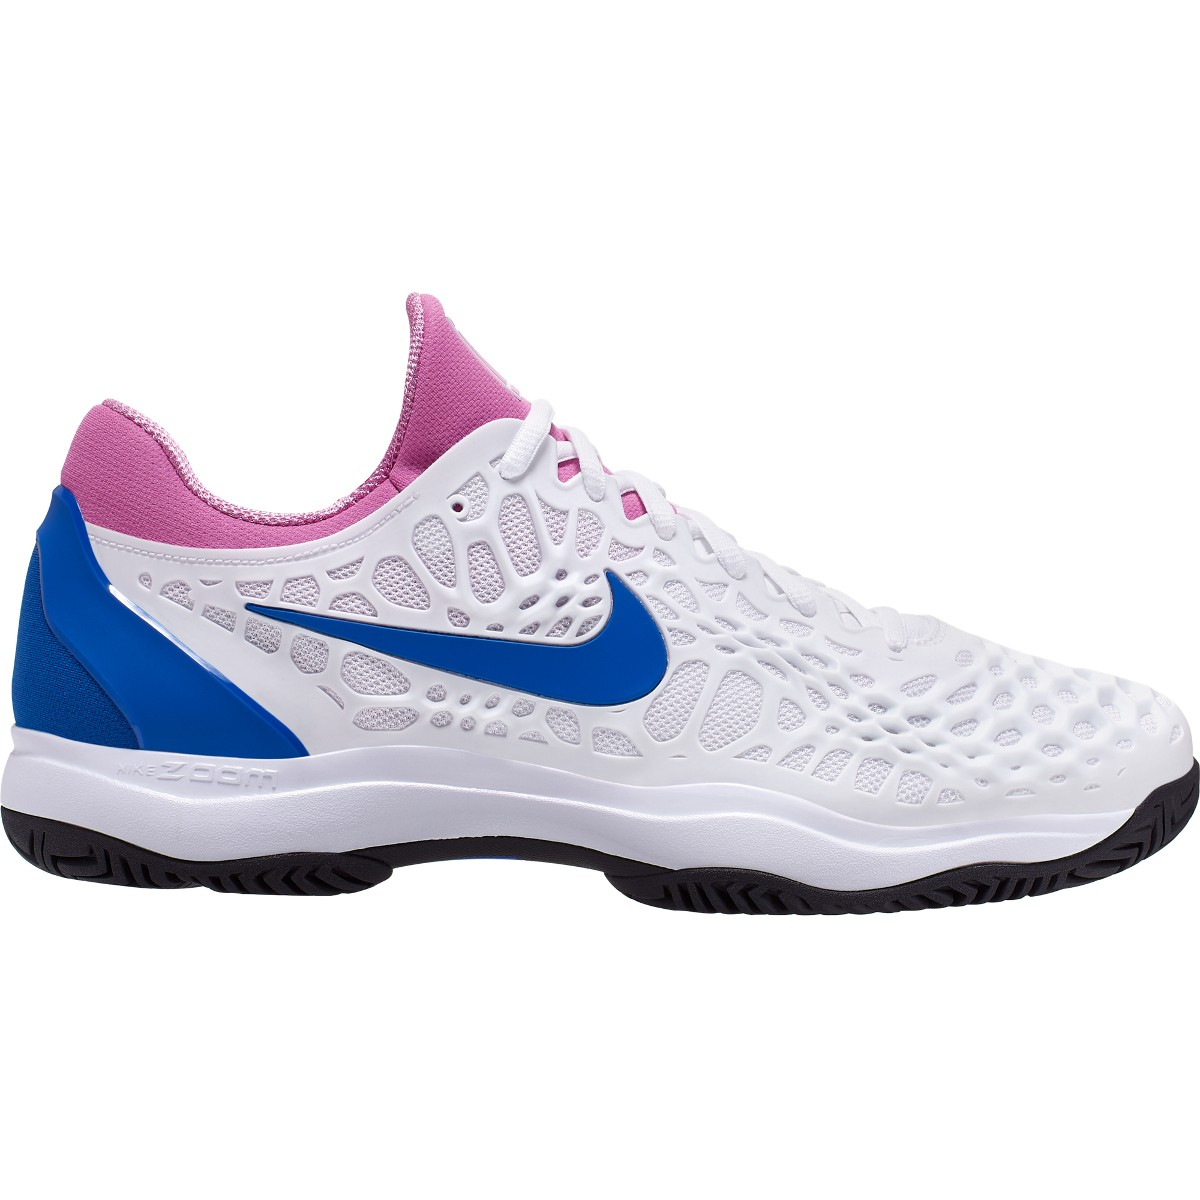 CHAUSSURES NIKE AIR ZOOM CAGE TOUTES SURFACES